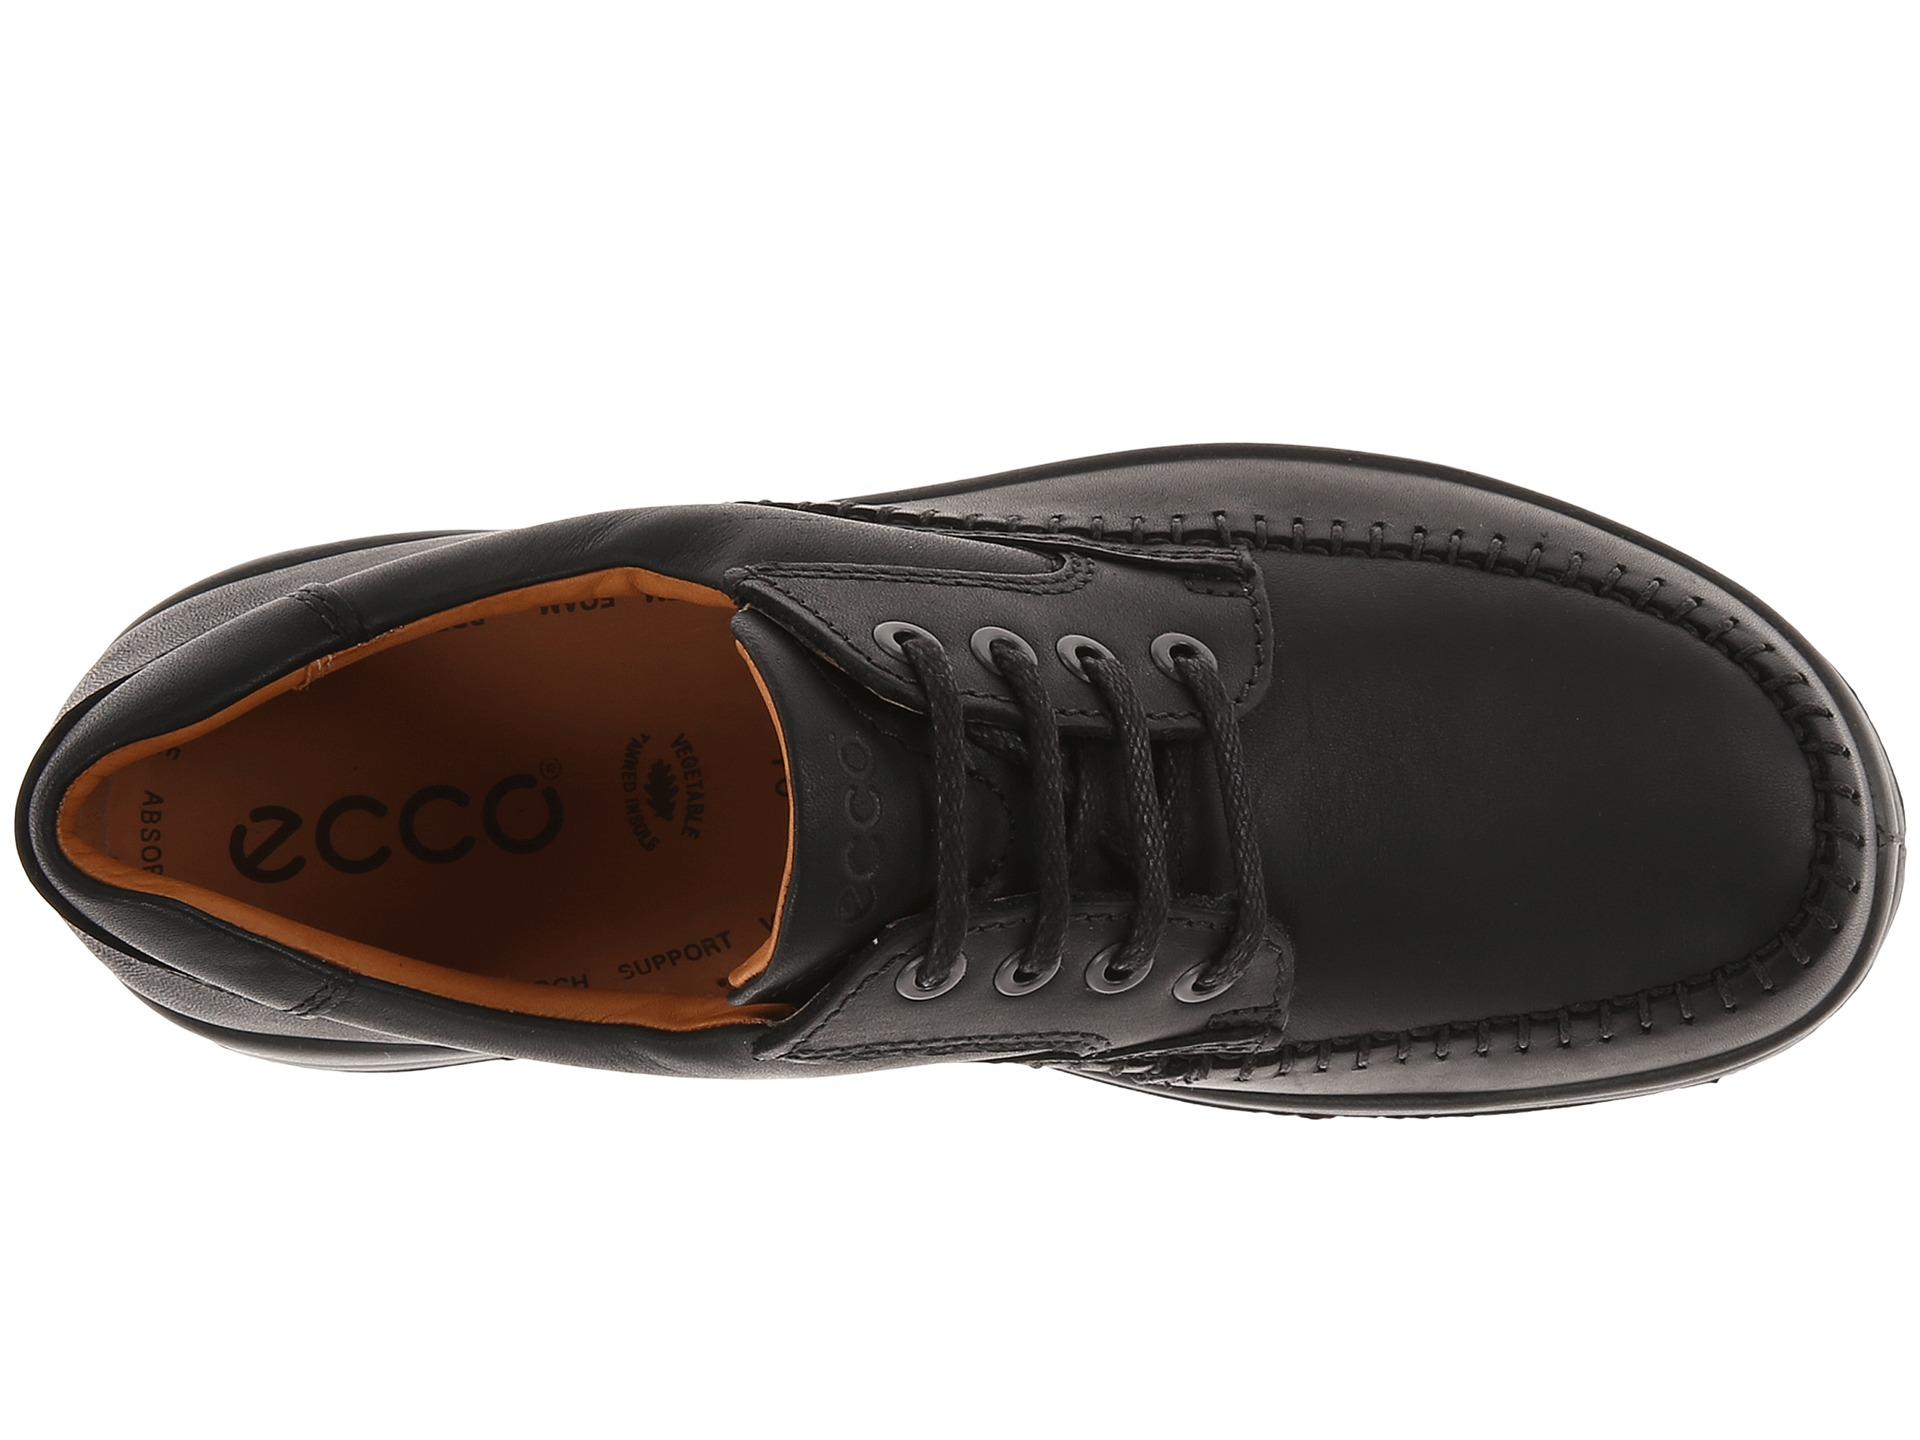 ECCO® Shoes, Boots, Sandals, Golf Shoes, Sneakers ...